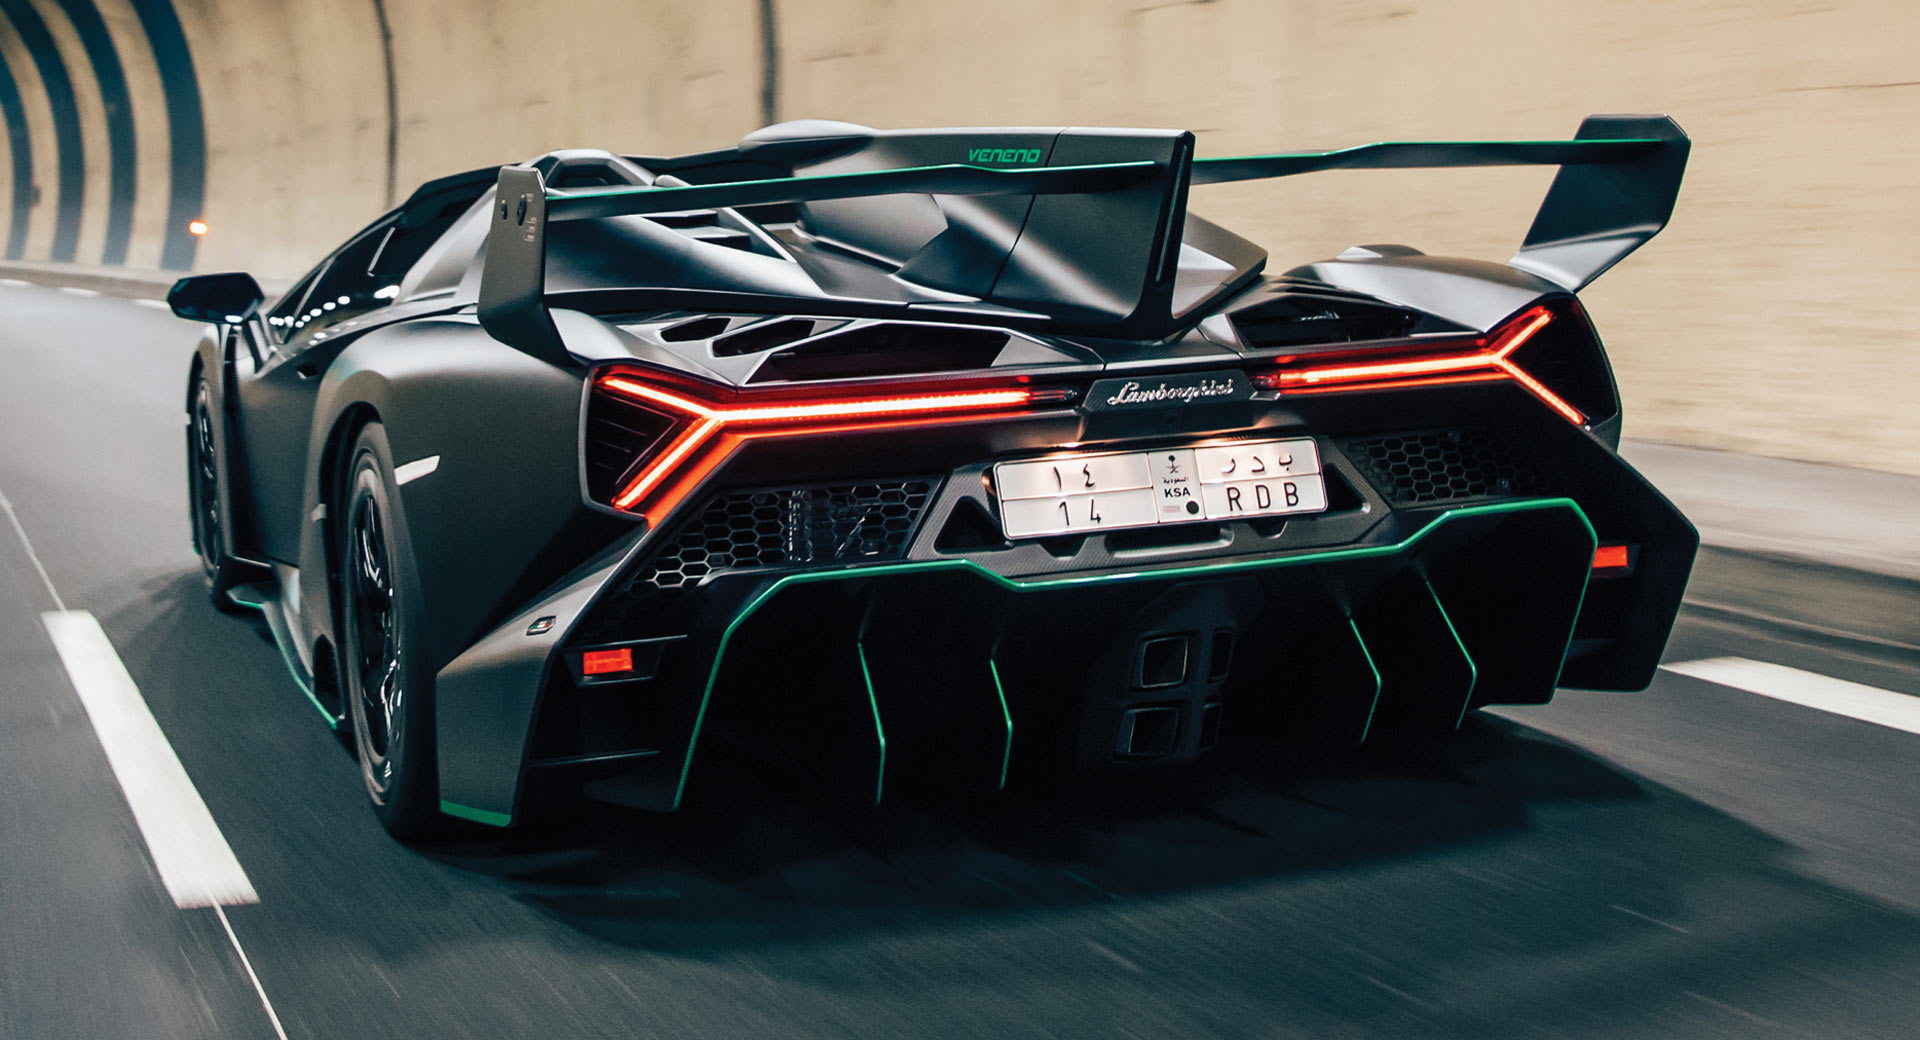 Stunning Lamborghini Veneno Roadster In Satin Black Could